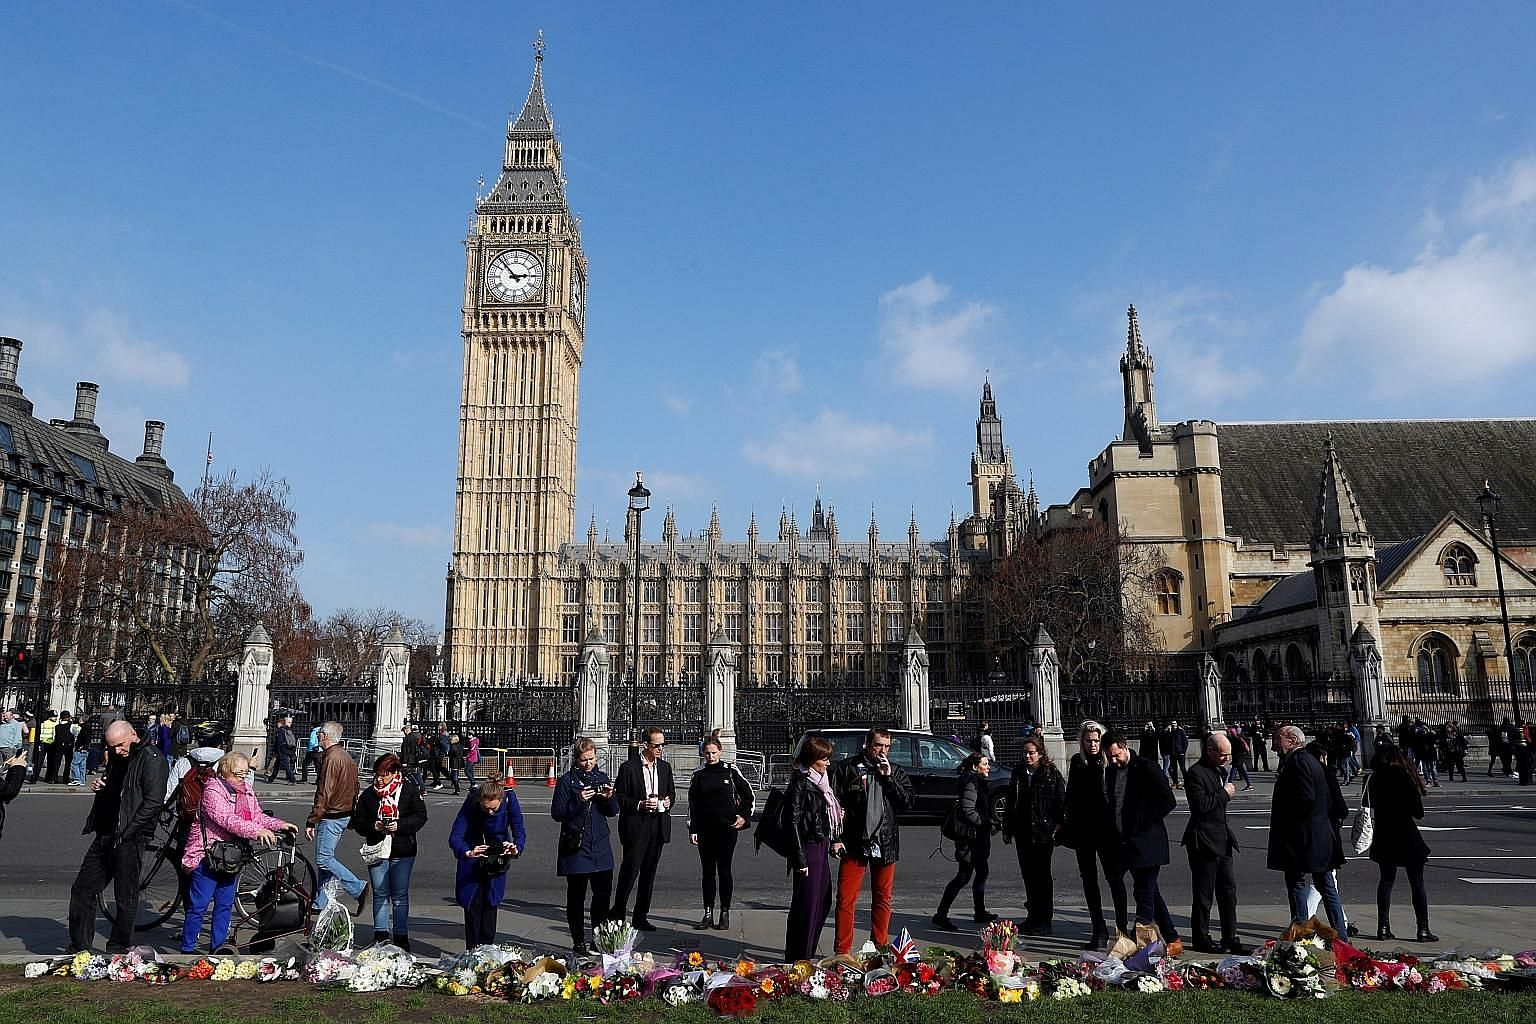 Since the attack, people have left tributes in Parliament Square. Masood is the oldest Islamist terrorist to launch an attack in Britain.